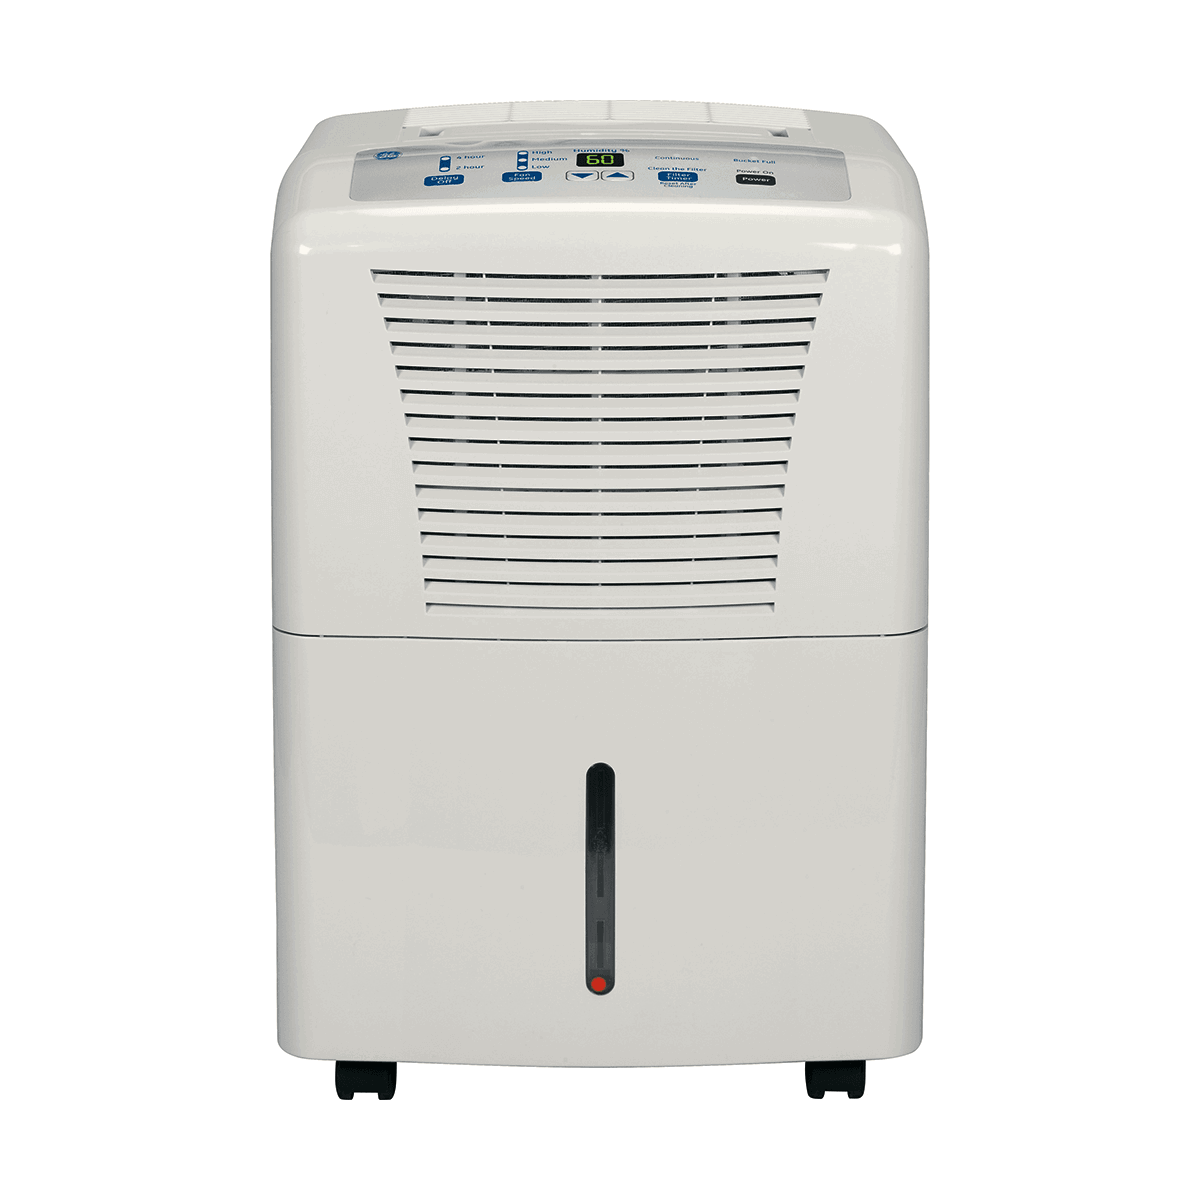 Small Dehumidifier For Bathroom From White Plastic